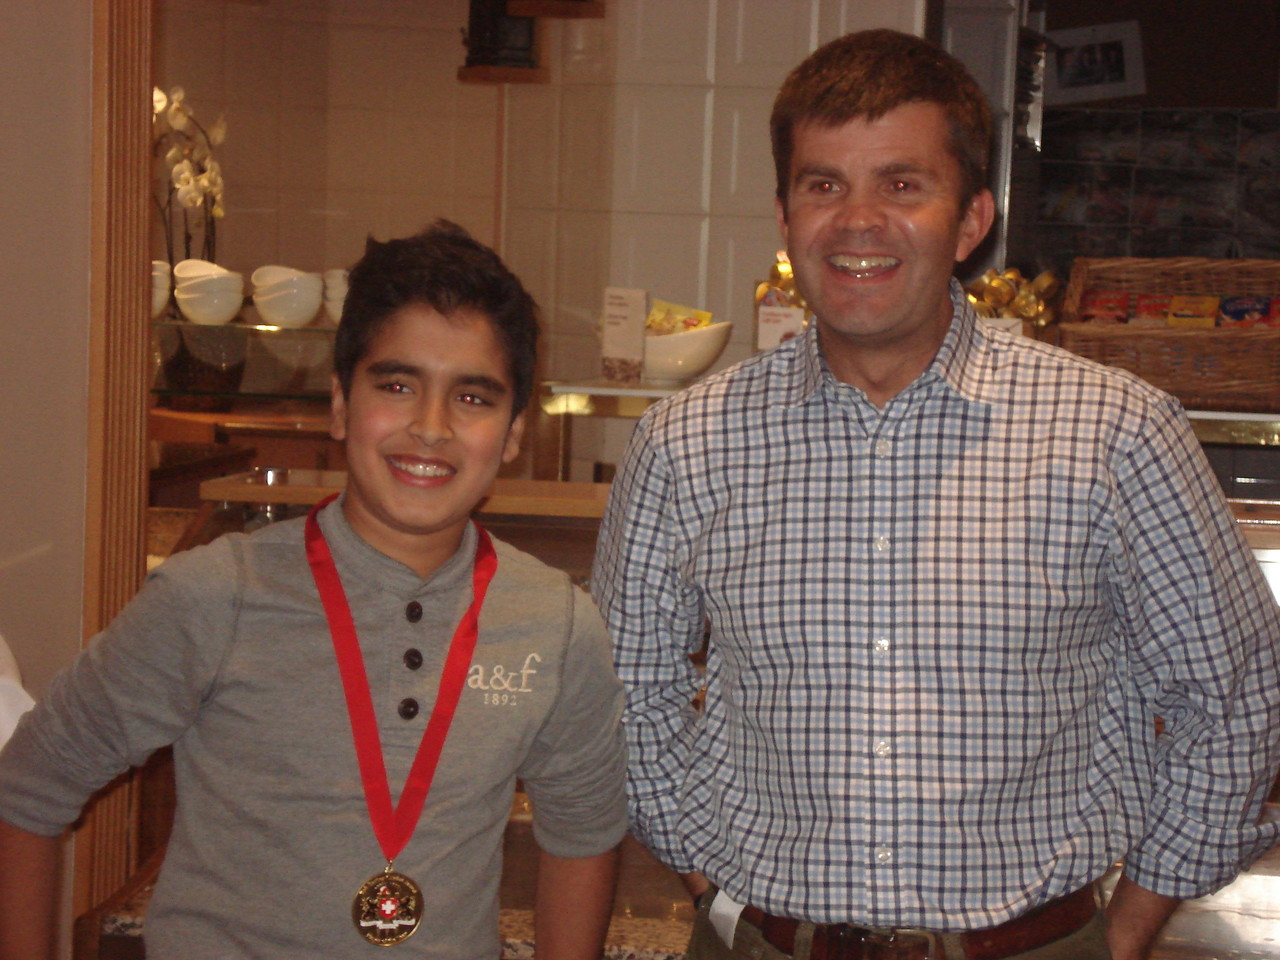 U13 Bob Barber Award Winner 2103: Rohan Jain